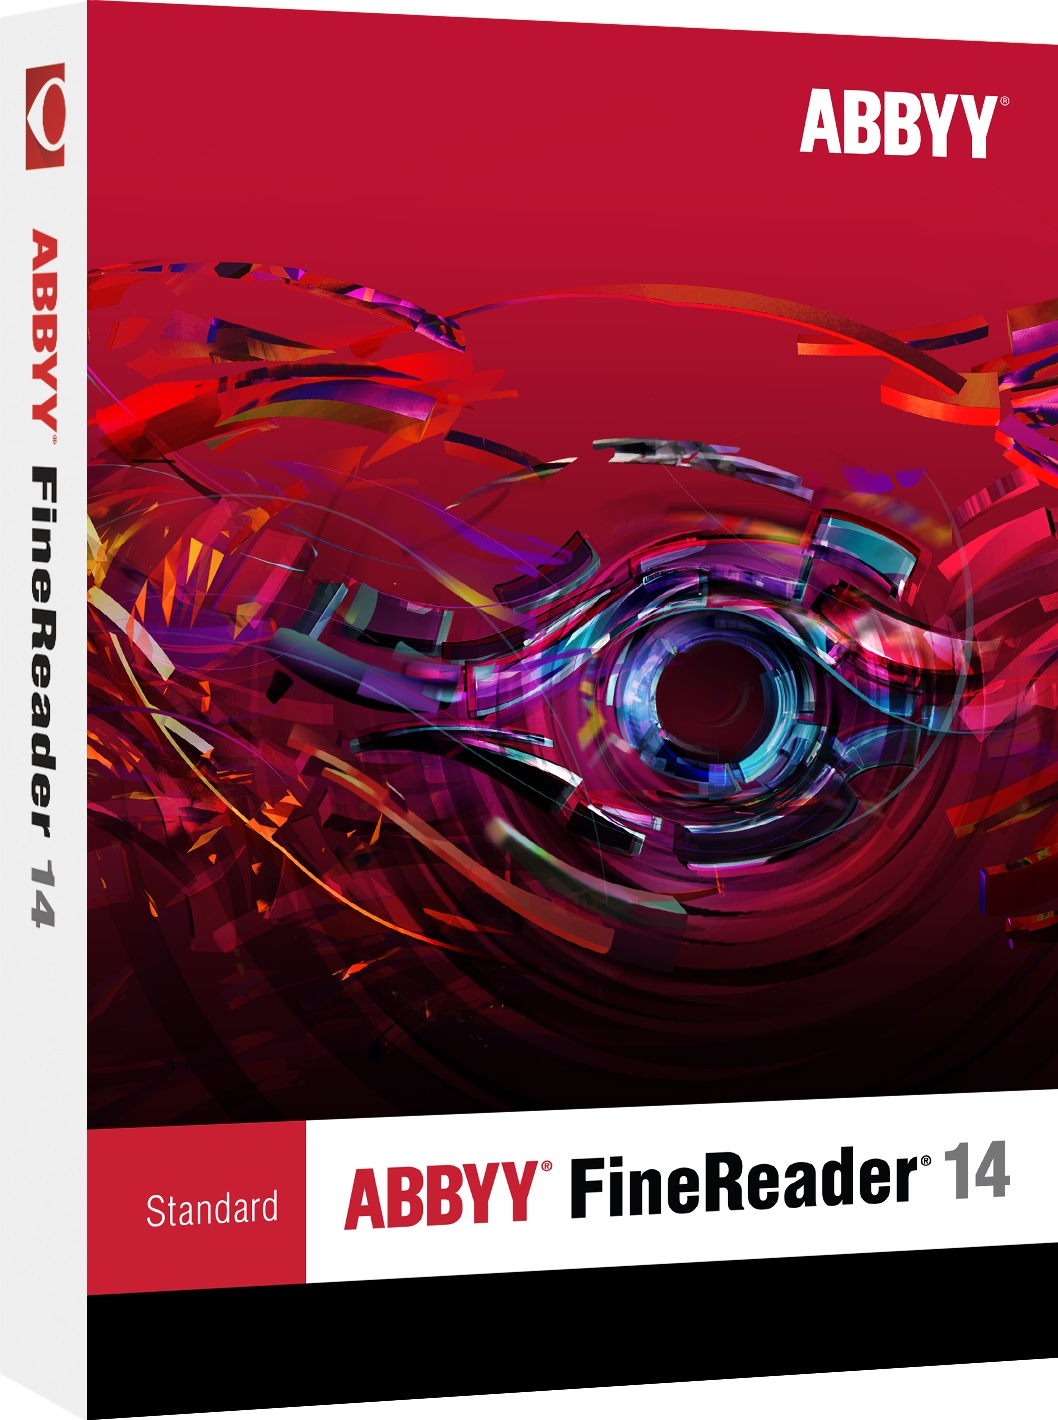 Standard-abbyy-finereader14-box-l-rgb.jpg